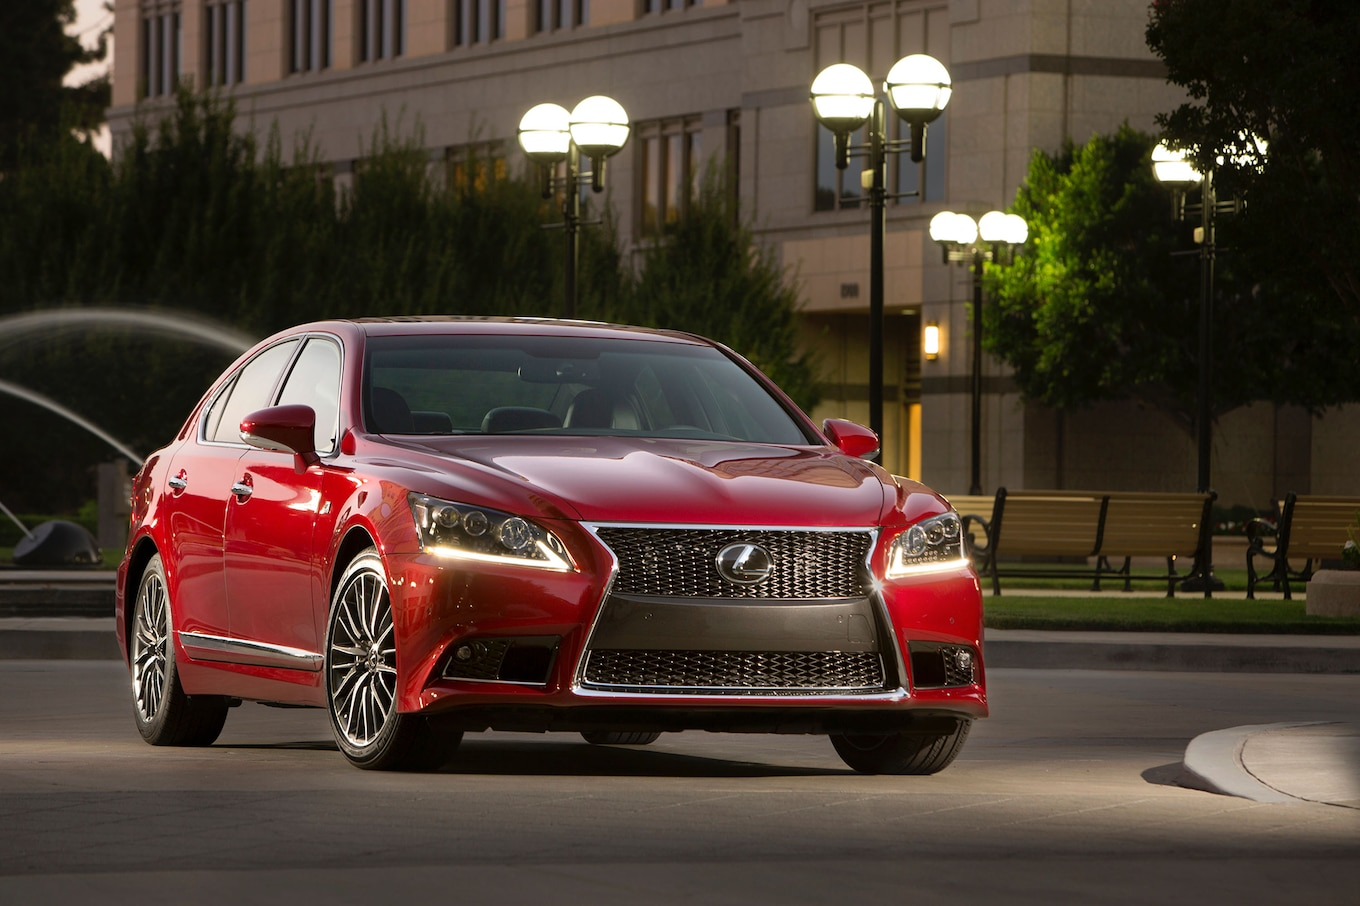 2014 Lexus LS460 Reviews and Rating